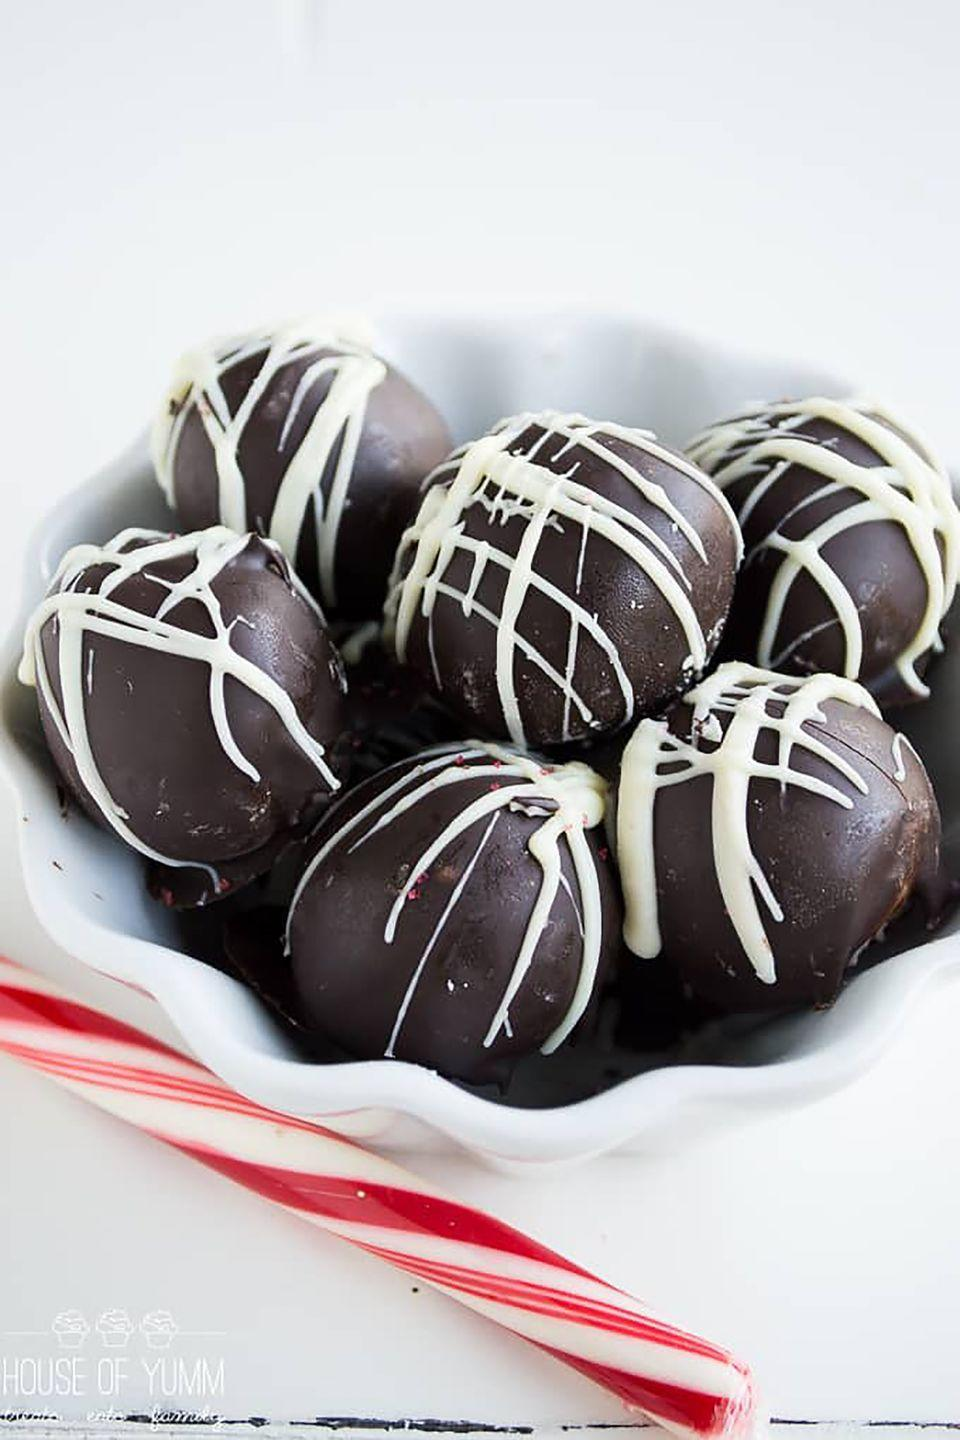 """<p>You'll feel like you're biting into a creamy candy cane (and we're definitely OK with that). </p><p><strong>Get the recipe at <a href=""""http://houseofyumm.com/peppermint-truffles/"""" rel=""""nofollow noopener"""" target=""""_blank"""" data-ylk=""""slk:House of Yumm"""" class=""""link rapid-noclick-resp"""">House of Yumm</a>.</strong></p>"""